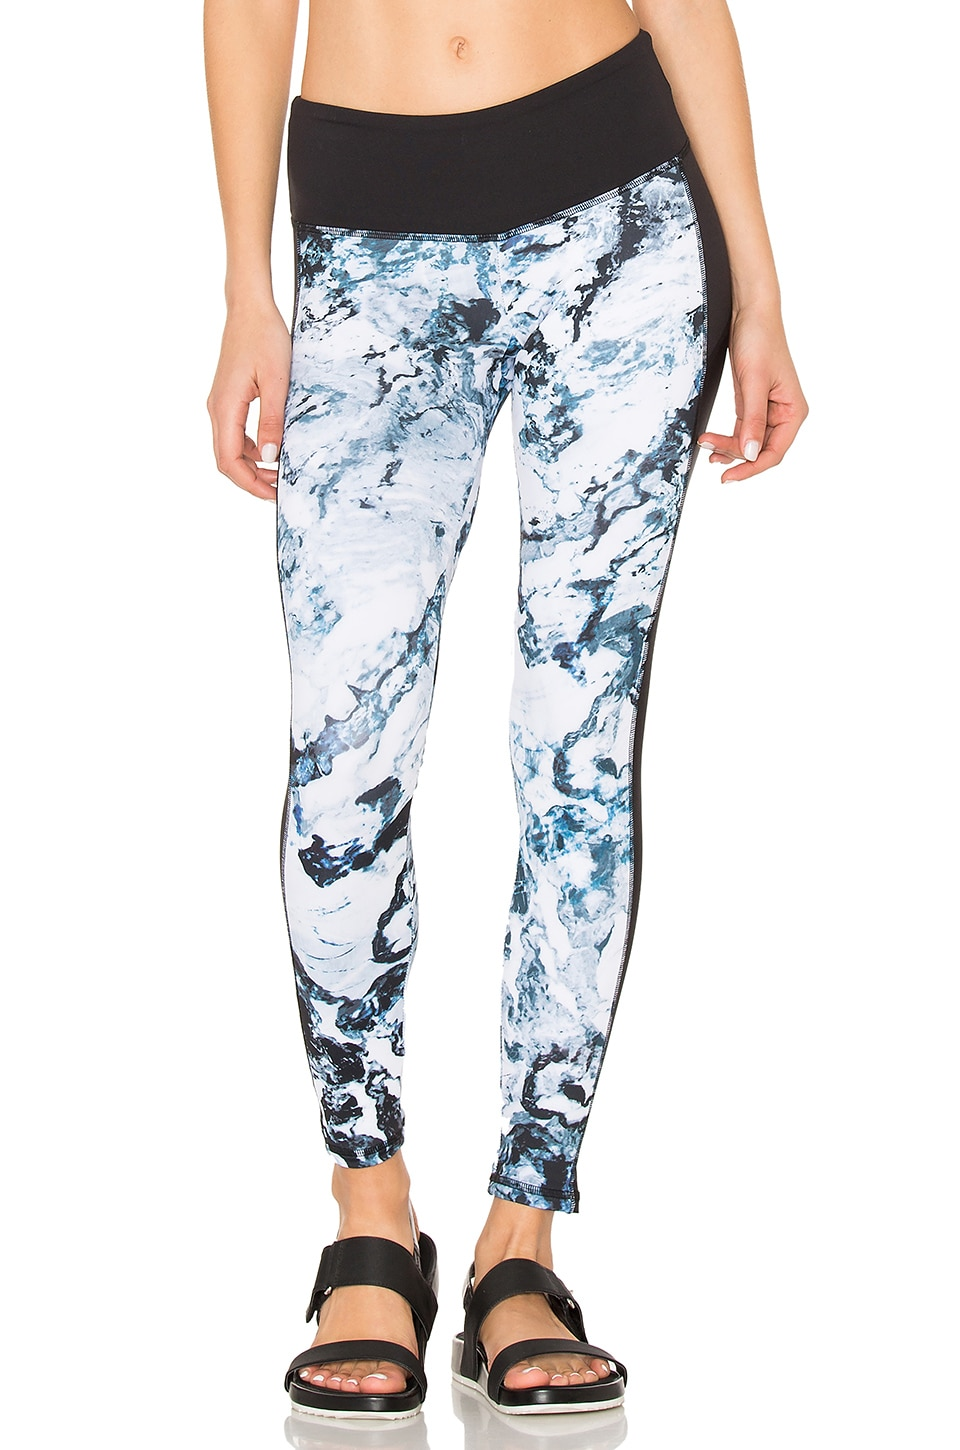 The Channing Legging by Strut-This